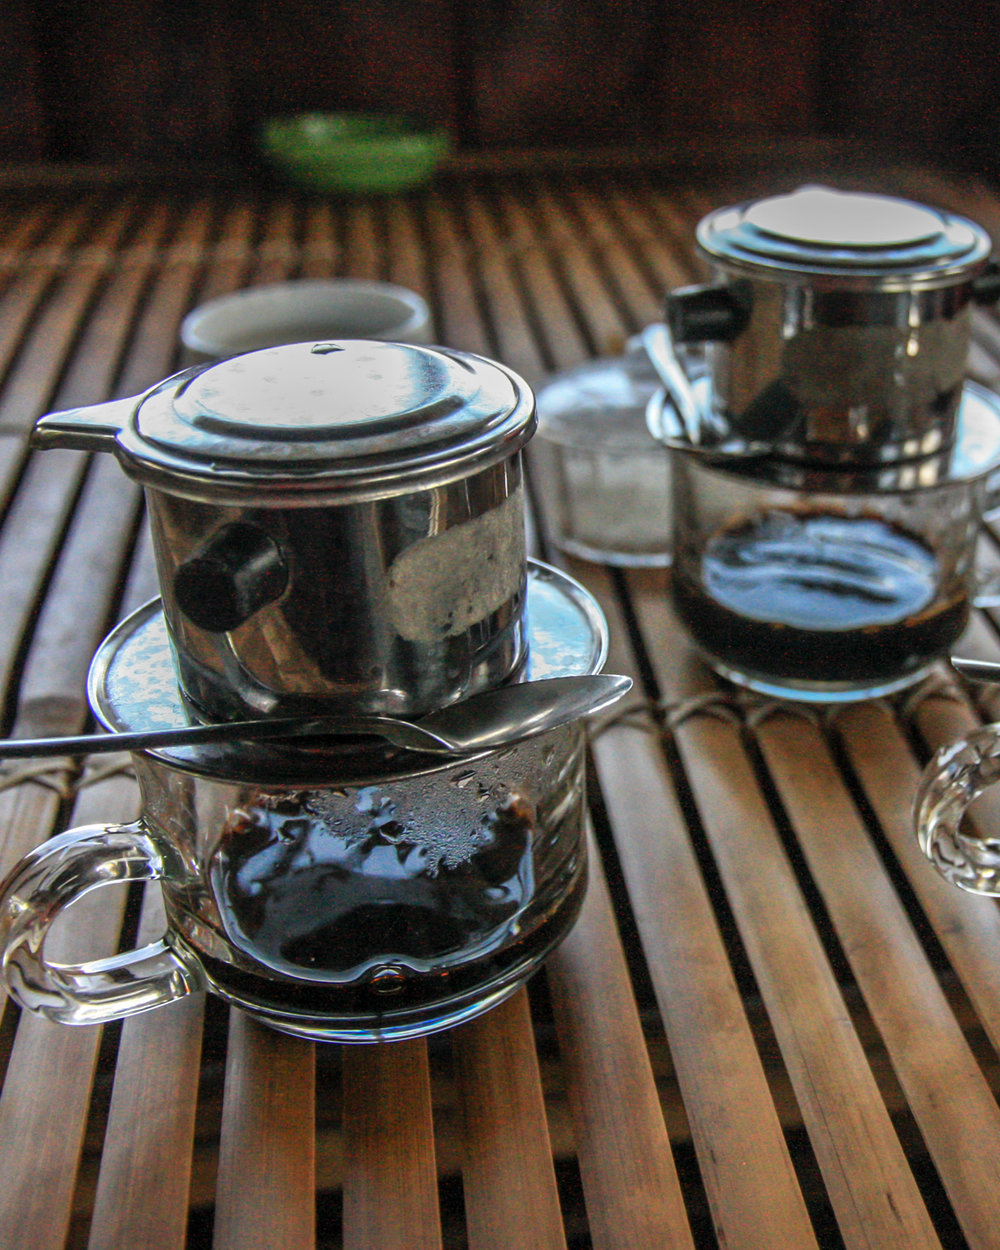 Drip coffee in Vietnam - something you must try!